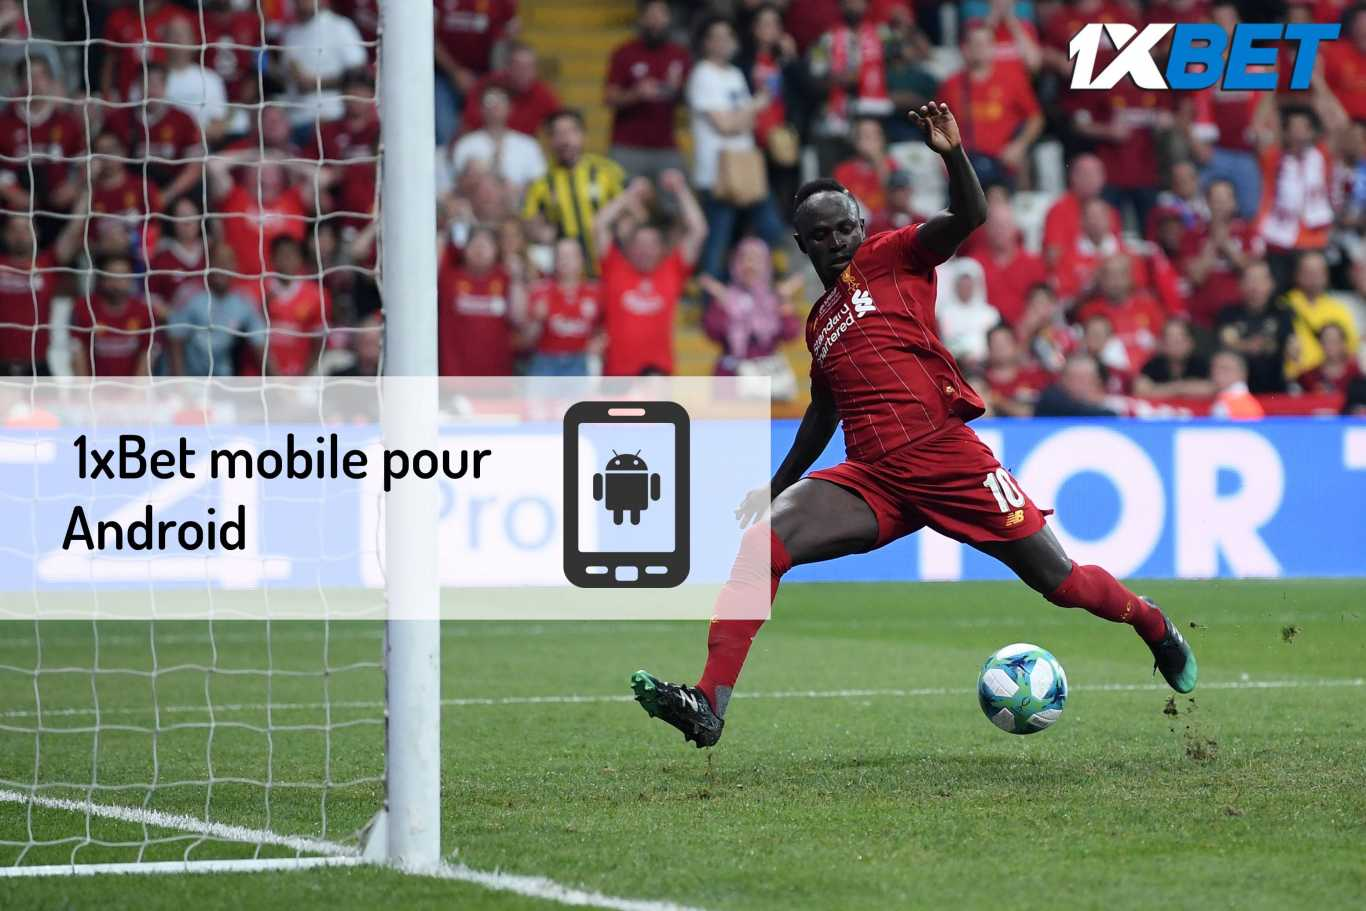 1xBet mobile pour Android